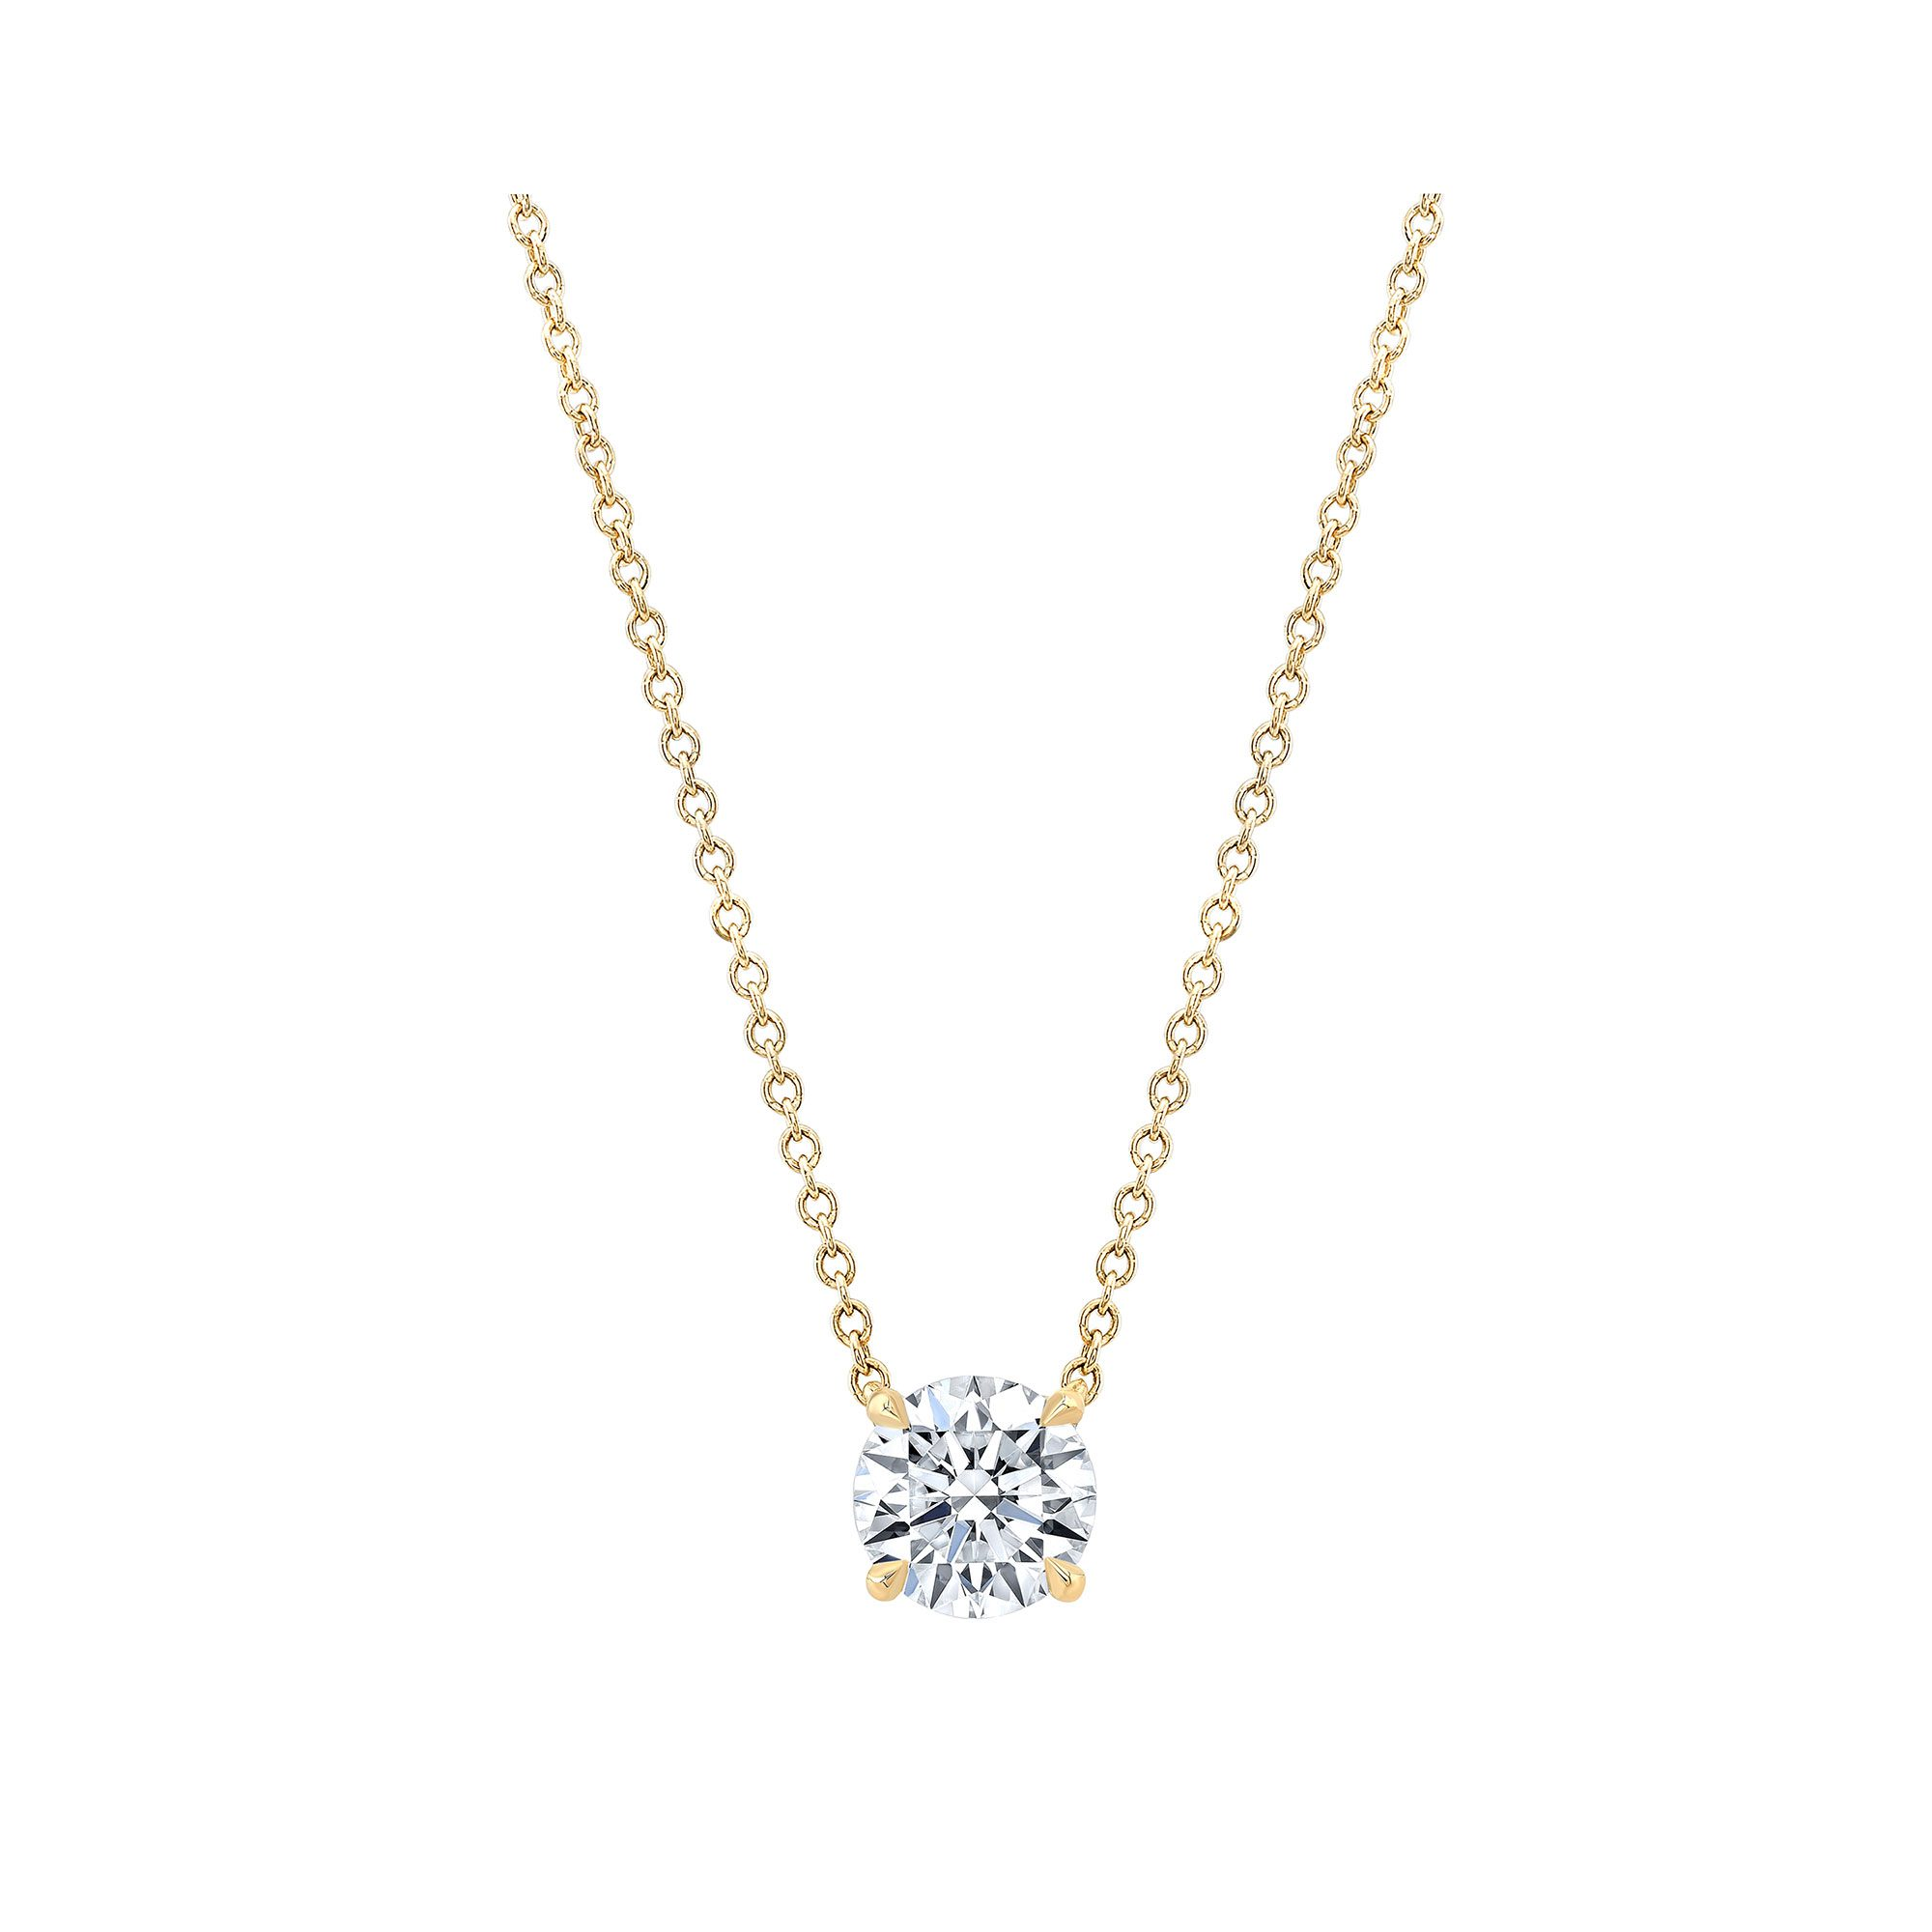 Marie Round Brilliant 1 Carat Lab Grown Diamond Necklace Pendant in Yellow Gold